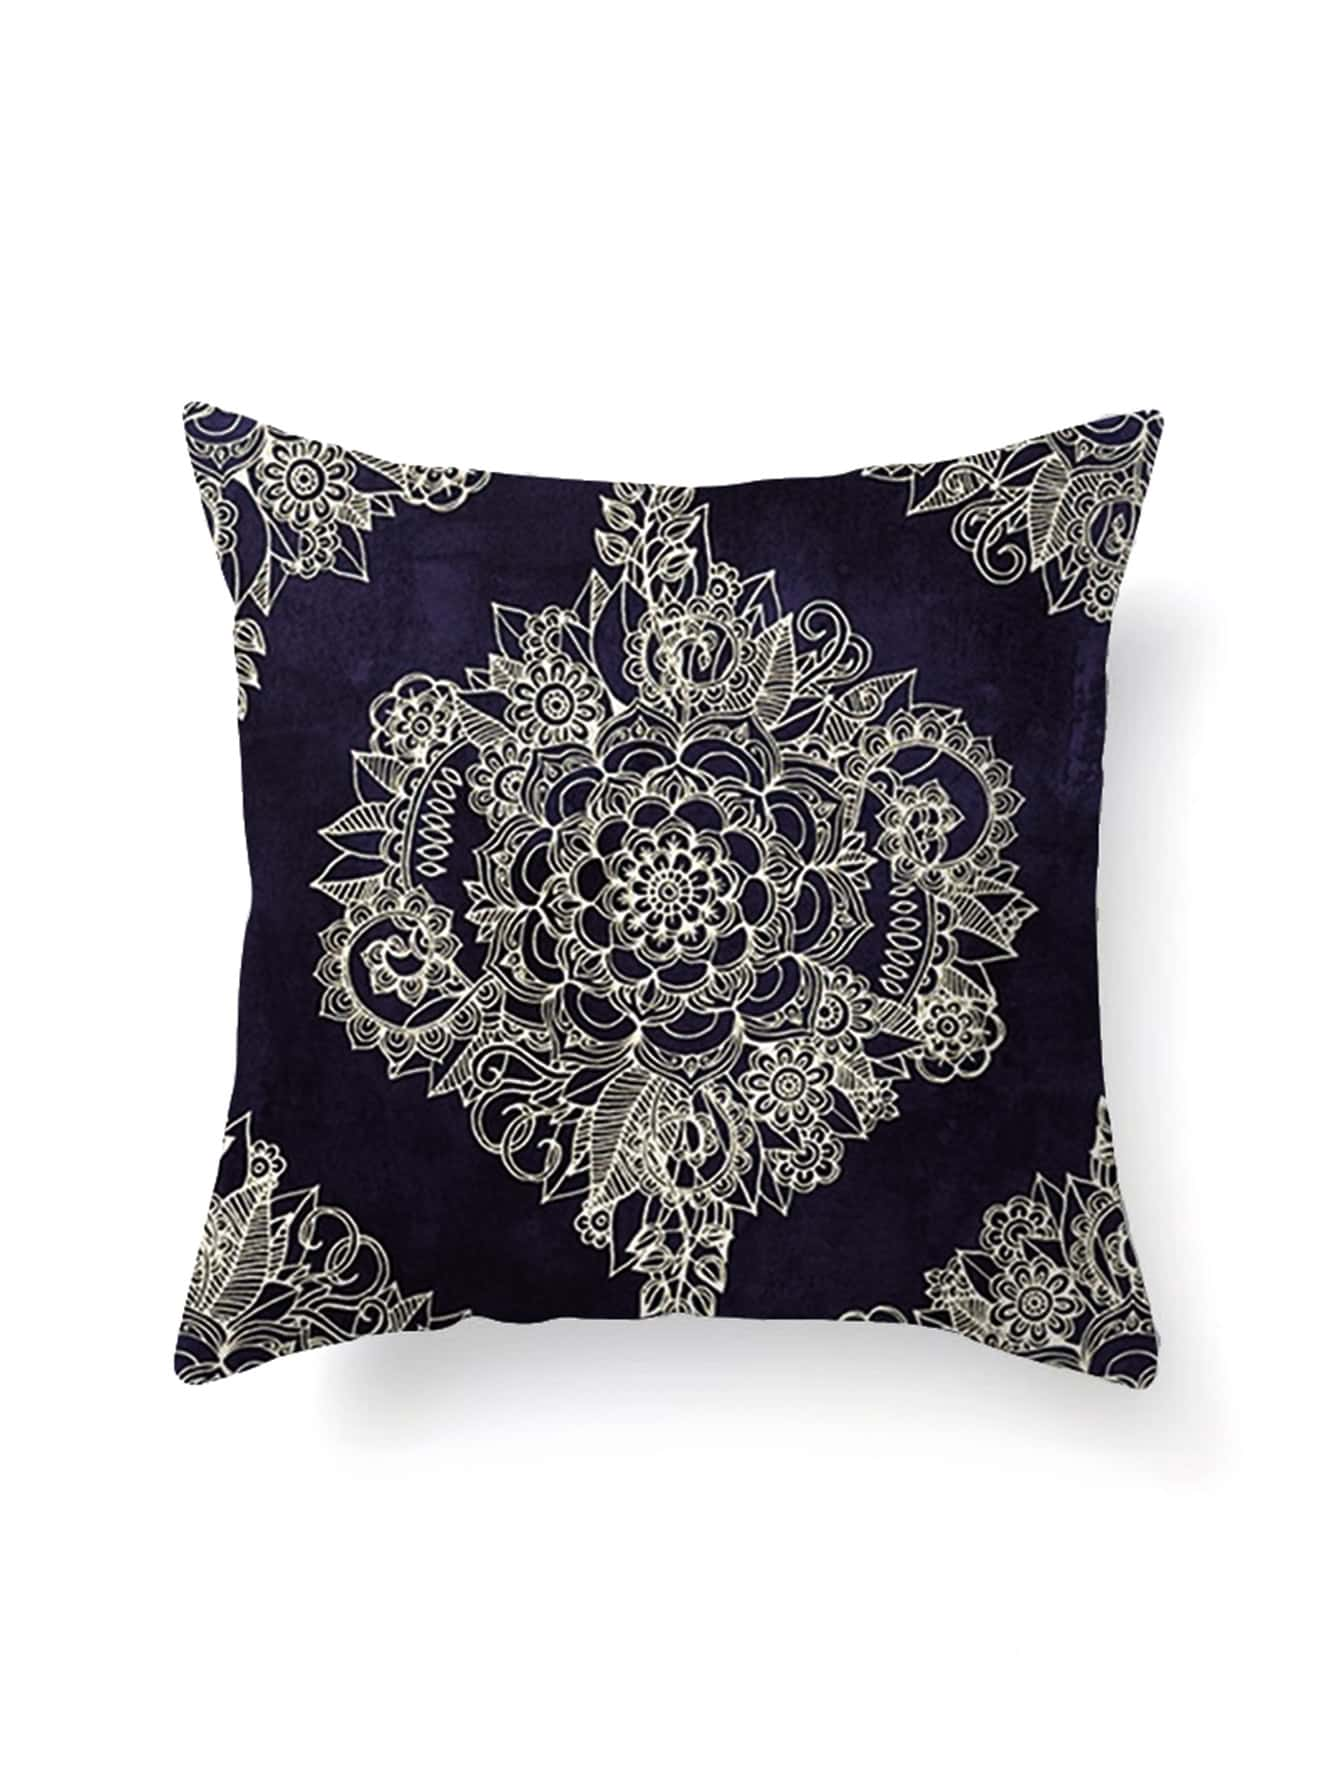 Abstract Flower Print Pillowcase Cover